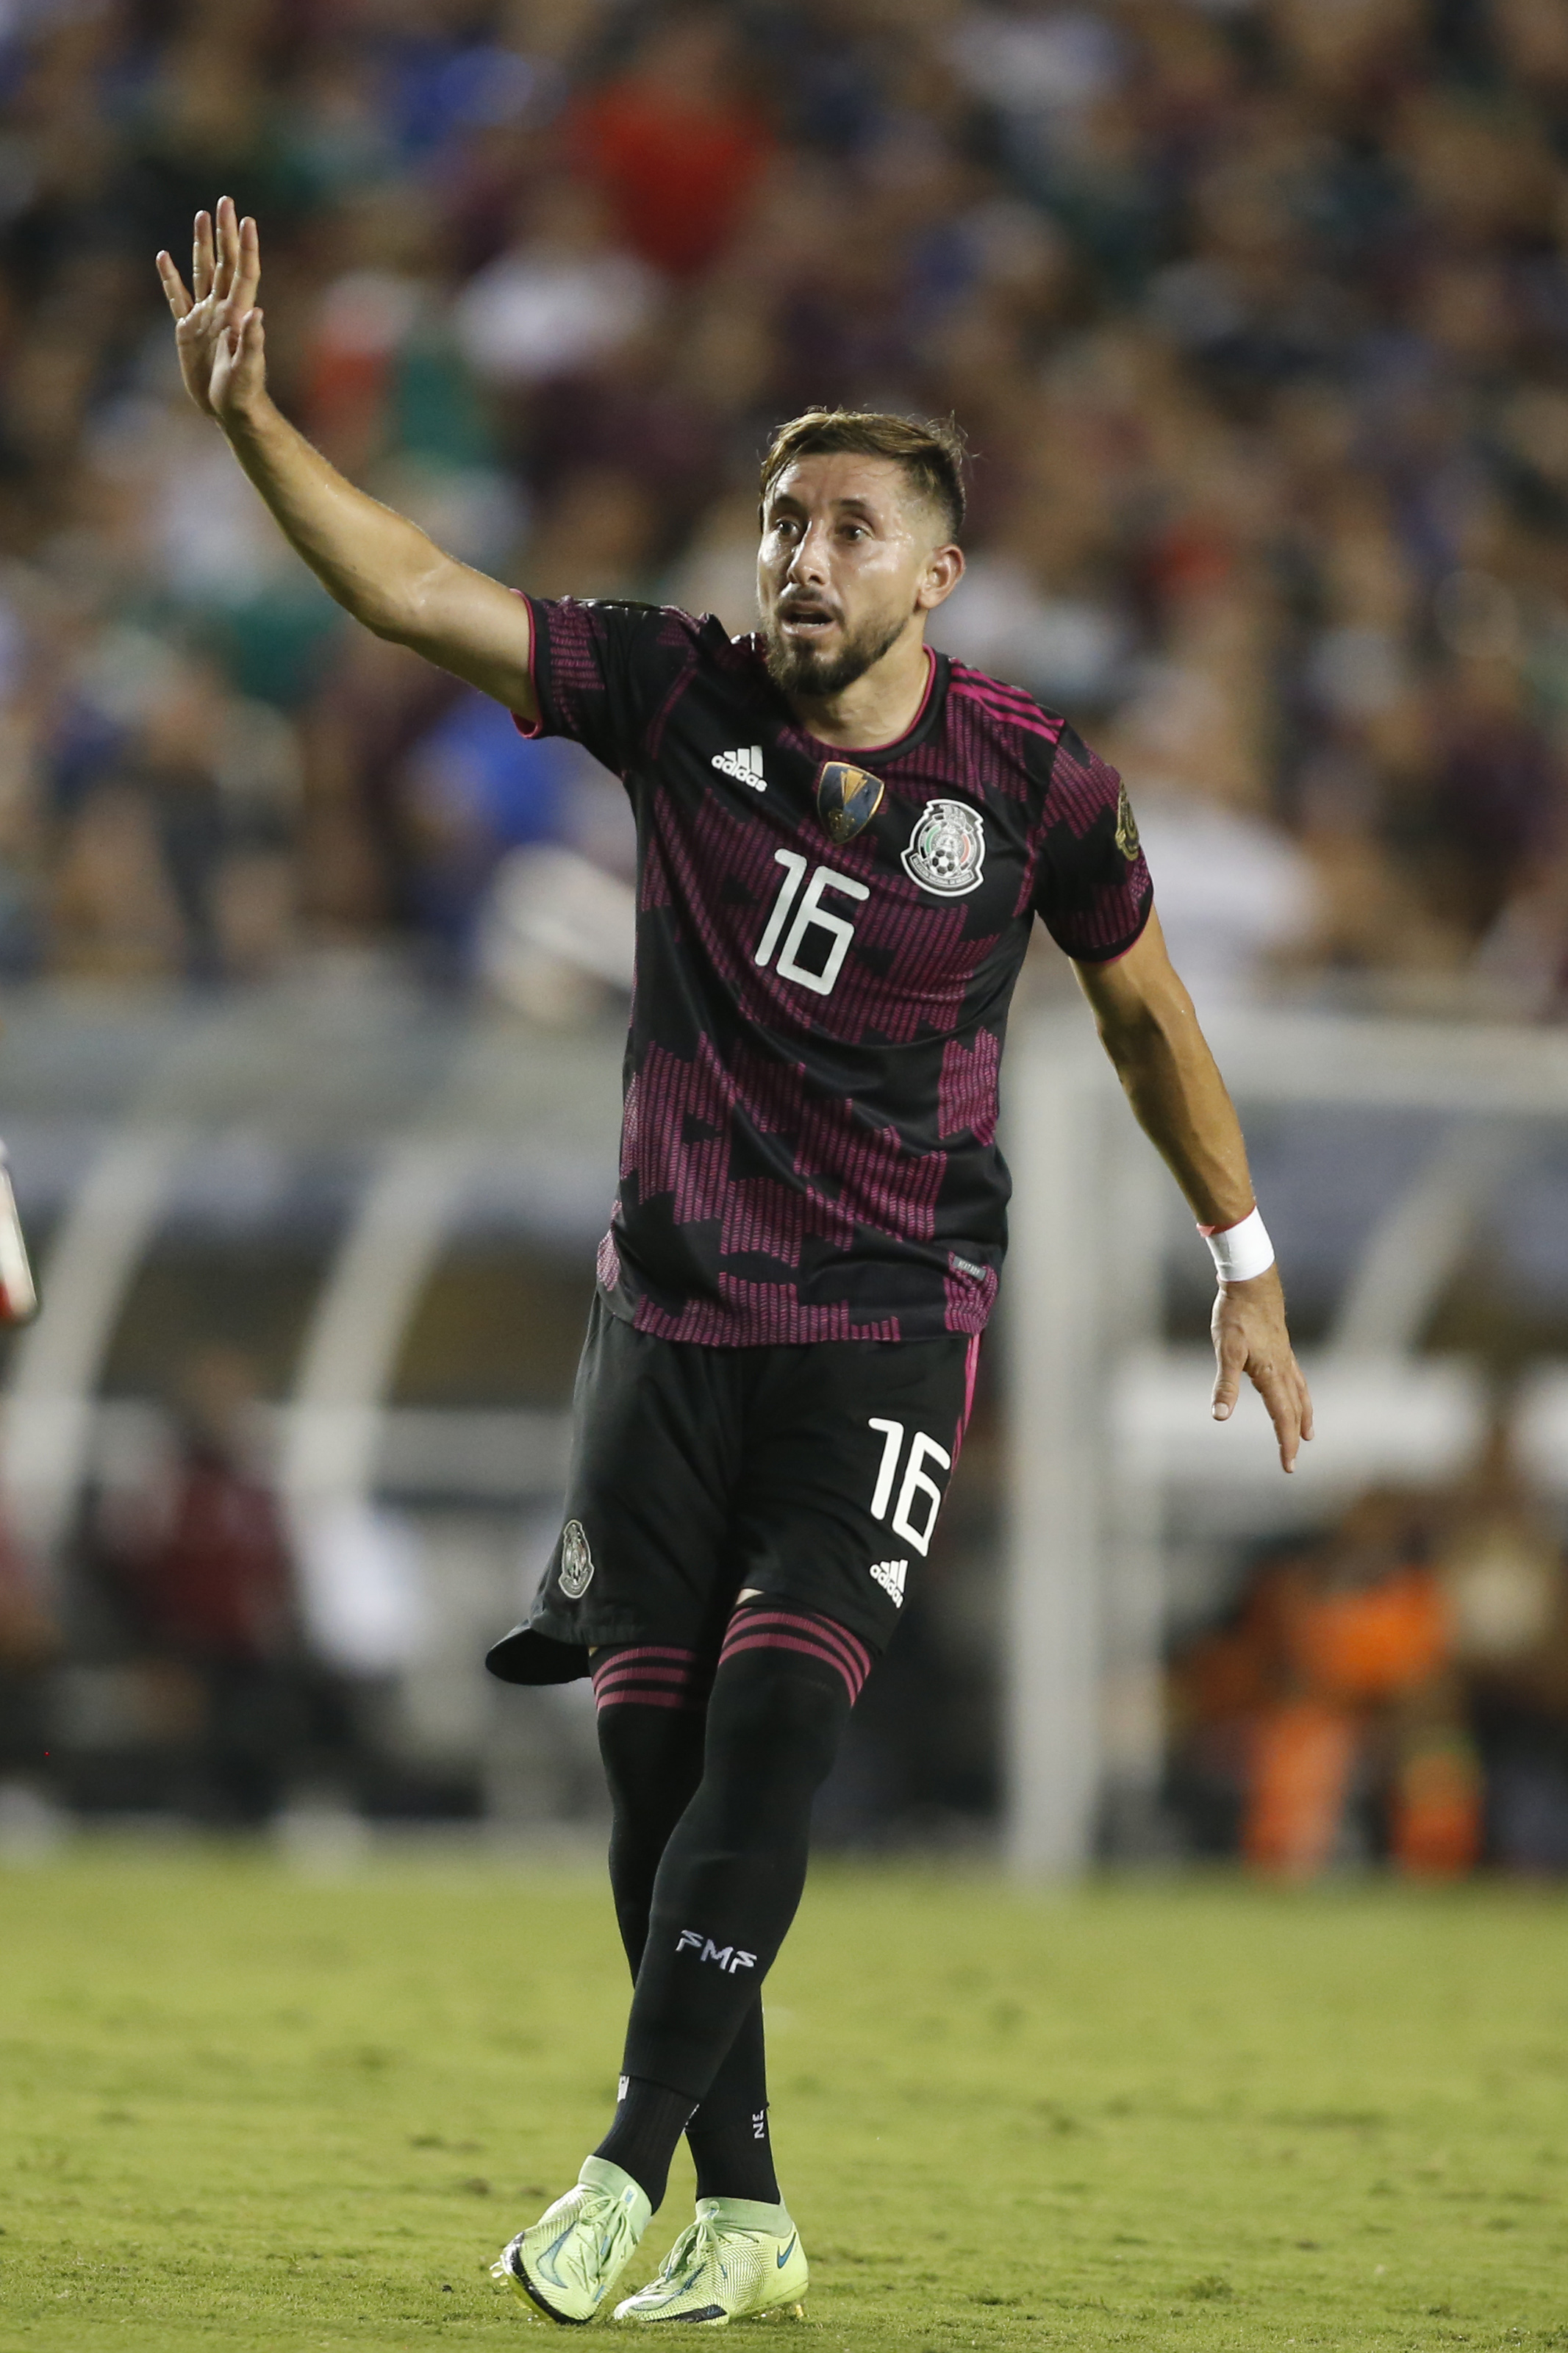 Mexico midfielder Hector Herrera reacts during the second half against El Salvador during CONCACAF Gold Cup Soccer group stage play at Cotton Bowl.